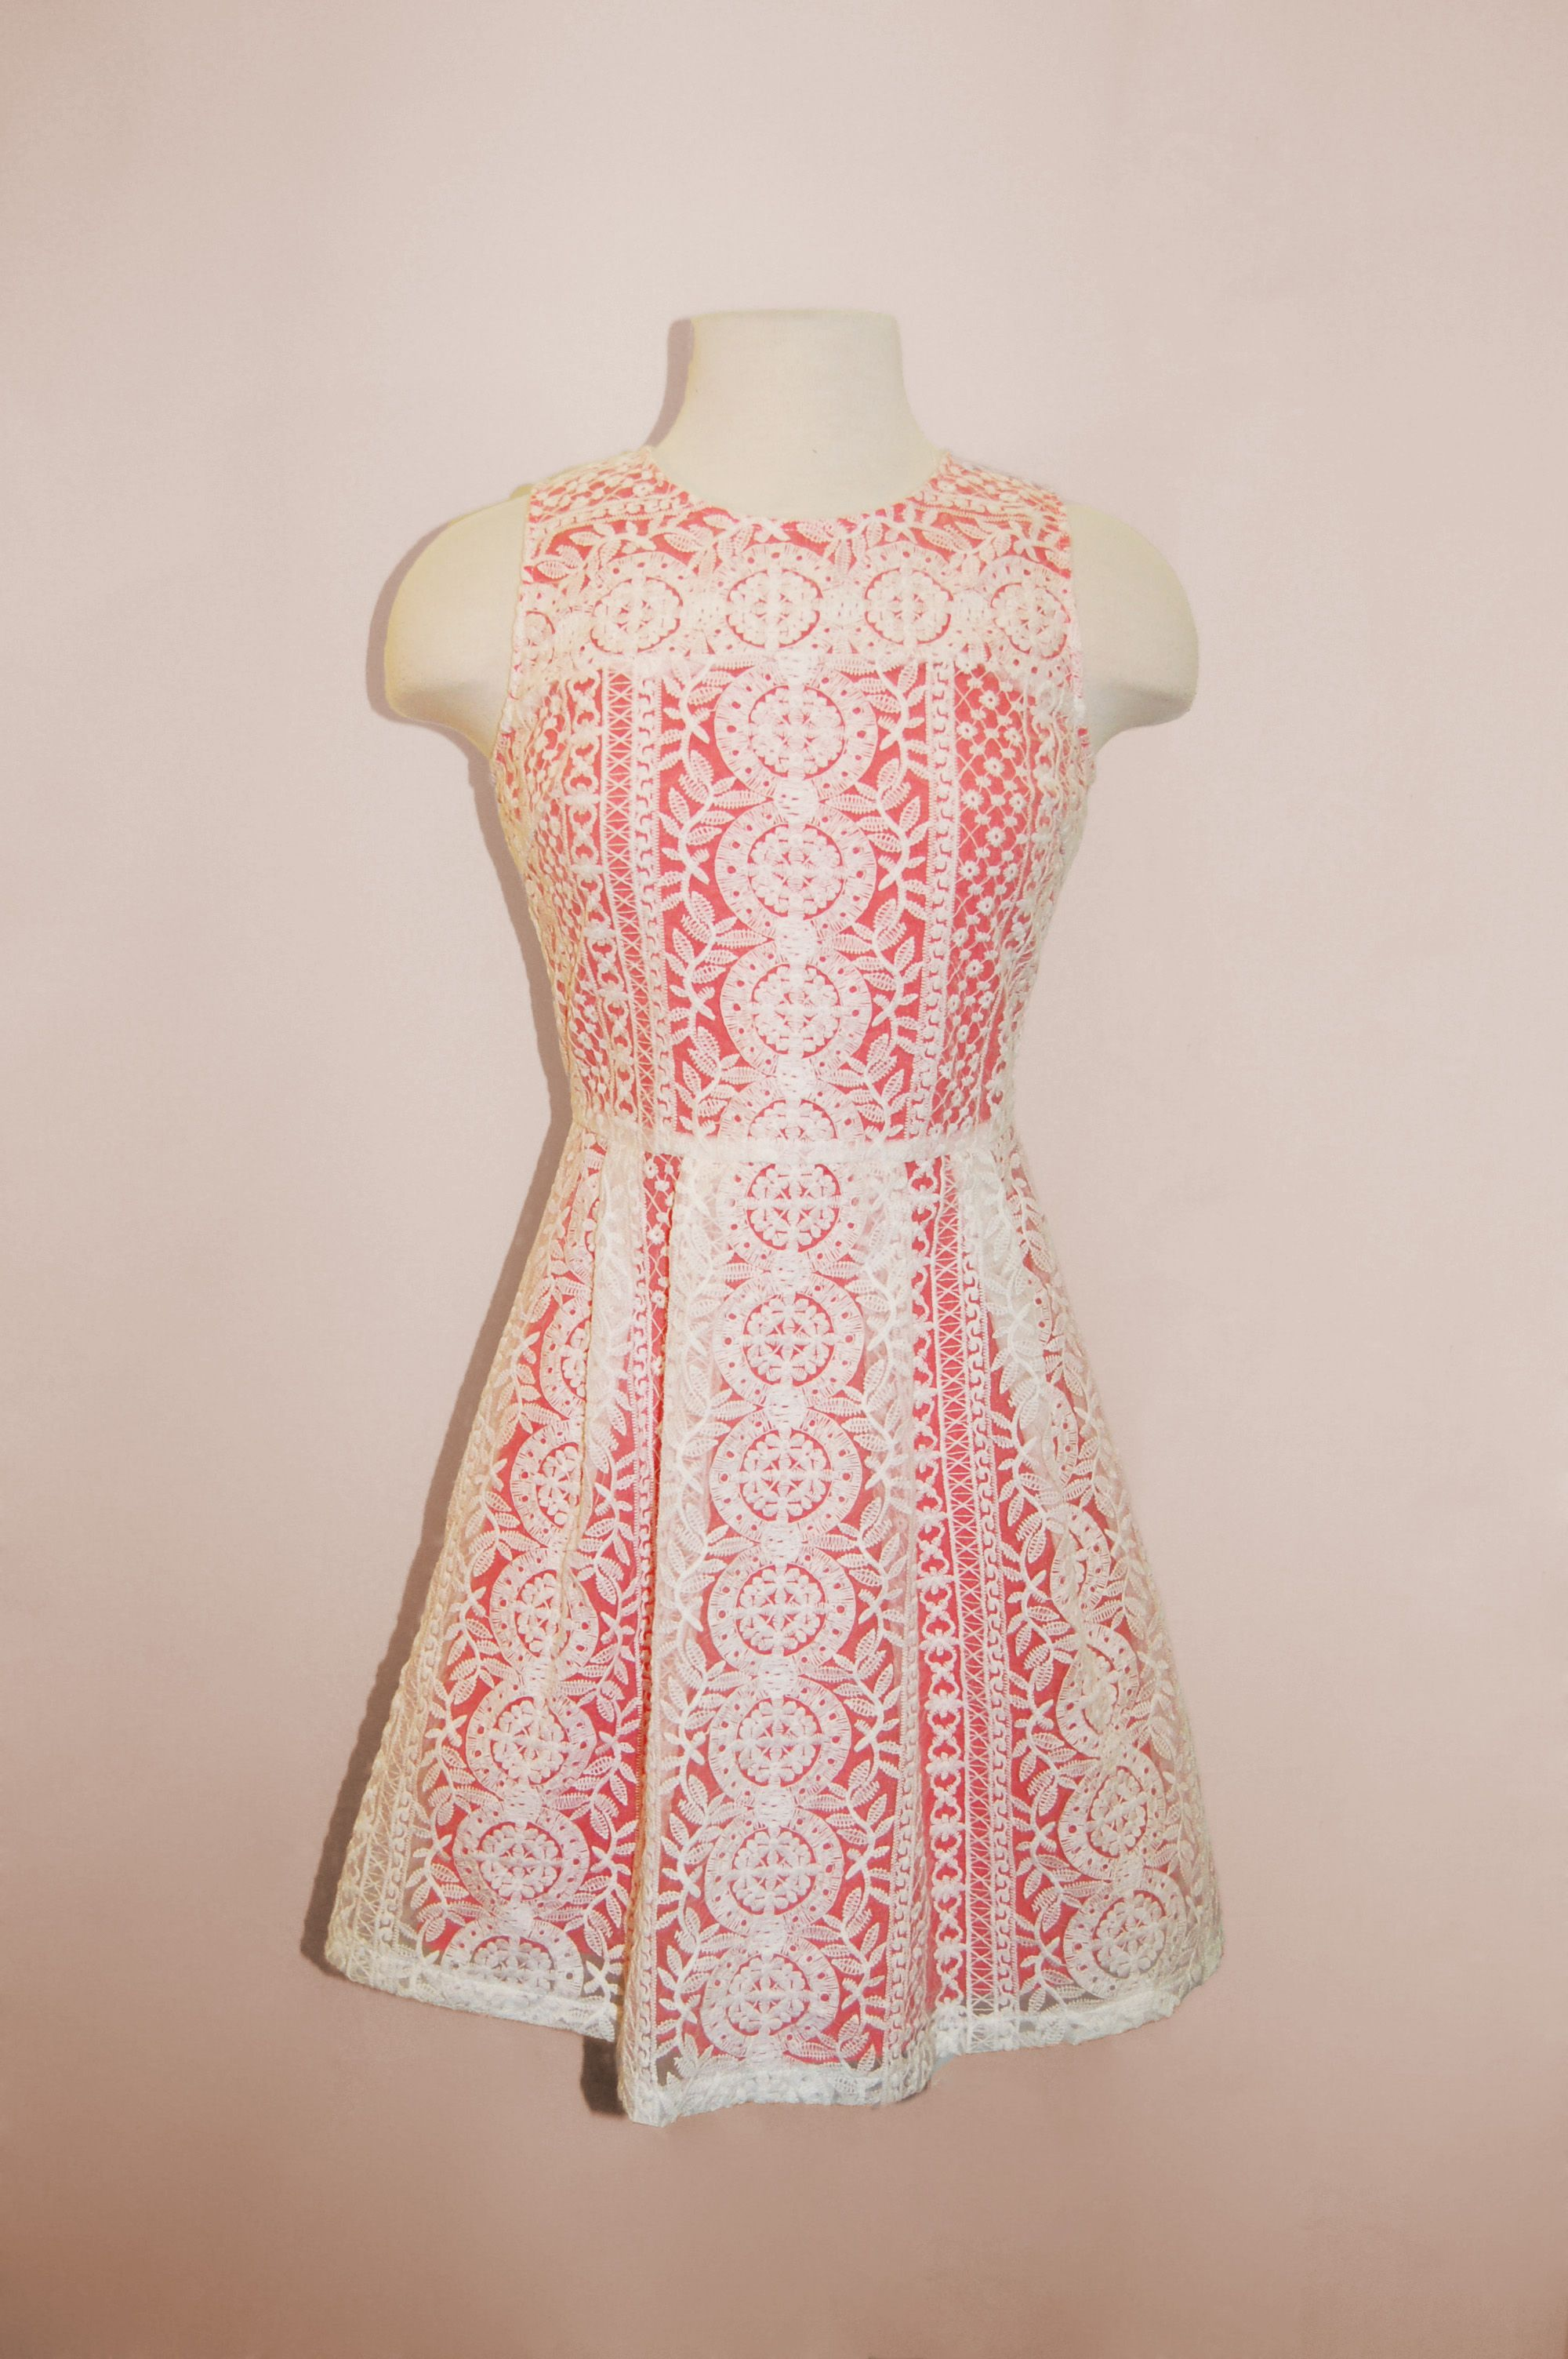 Our Bradford Dress brings a piece of Anthropolgie's style